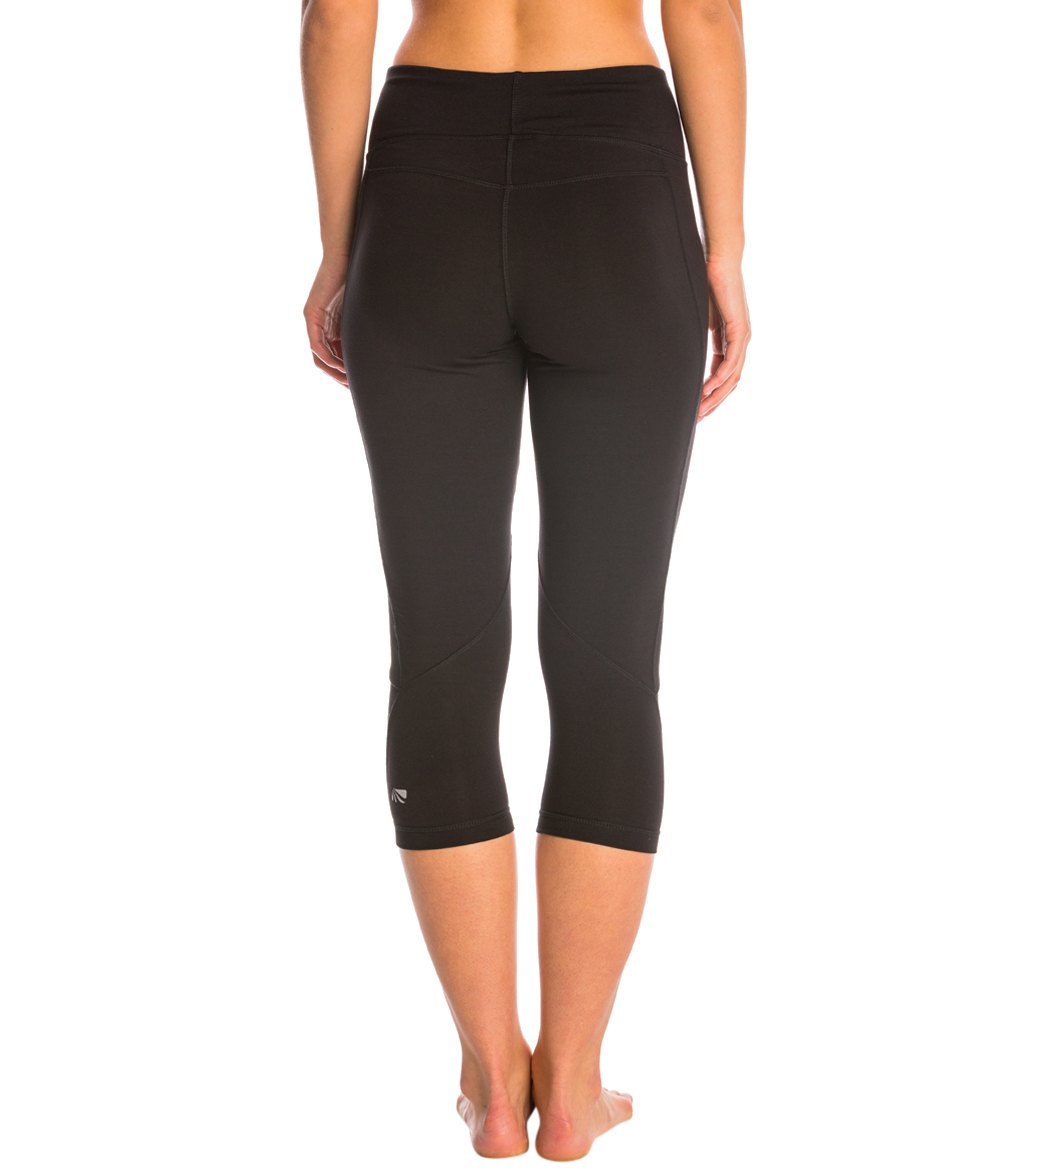 9bf461d144b Marika Carrie Ultimate Slimming Cotton Yoga Capris at YogaOutlet.com ...